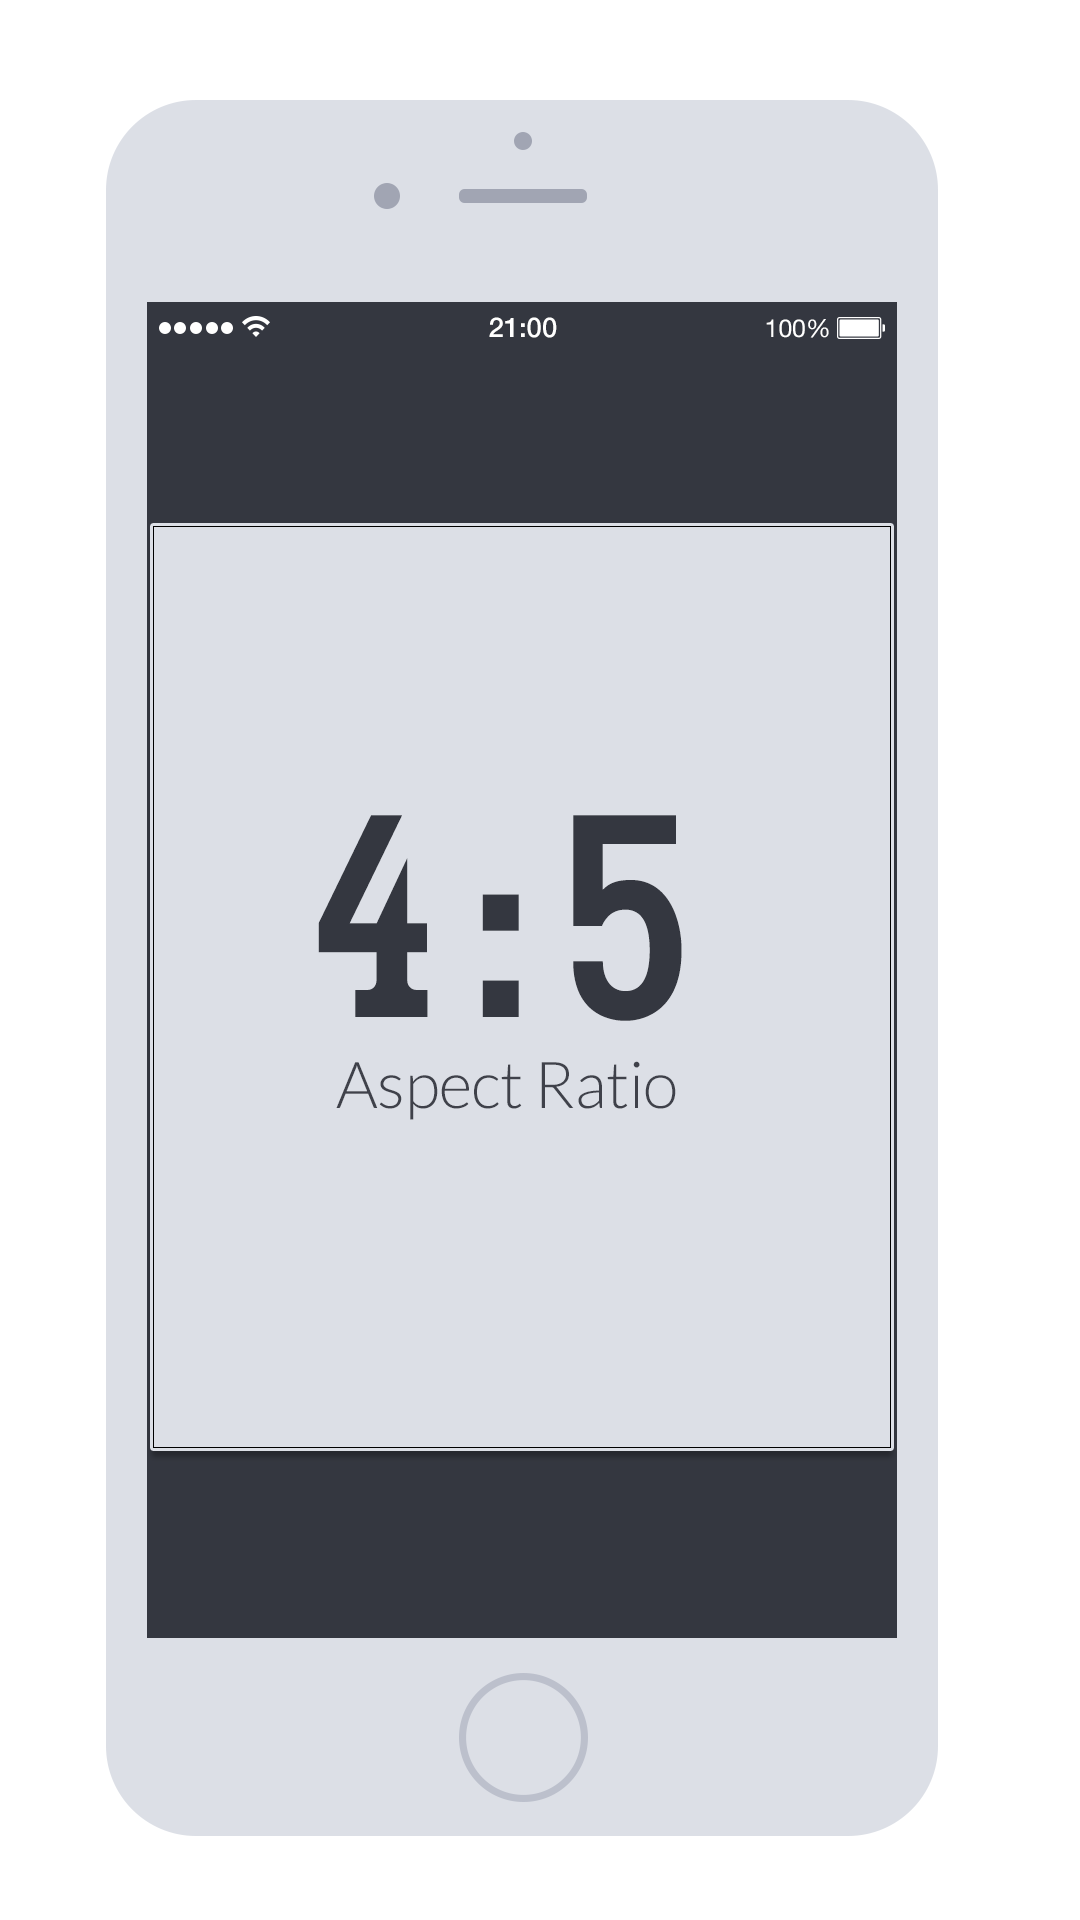 2 3 5 aspect ratio png. The complete guide